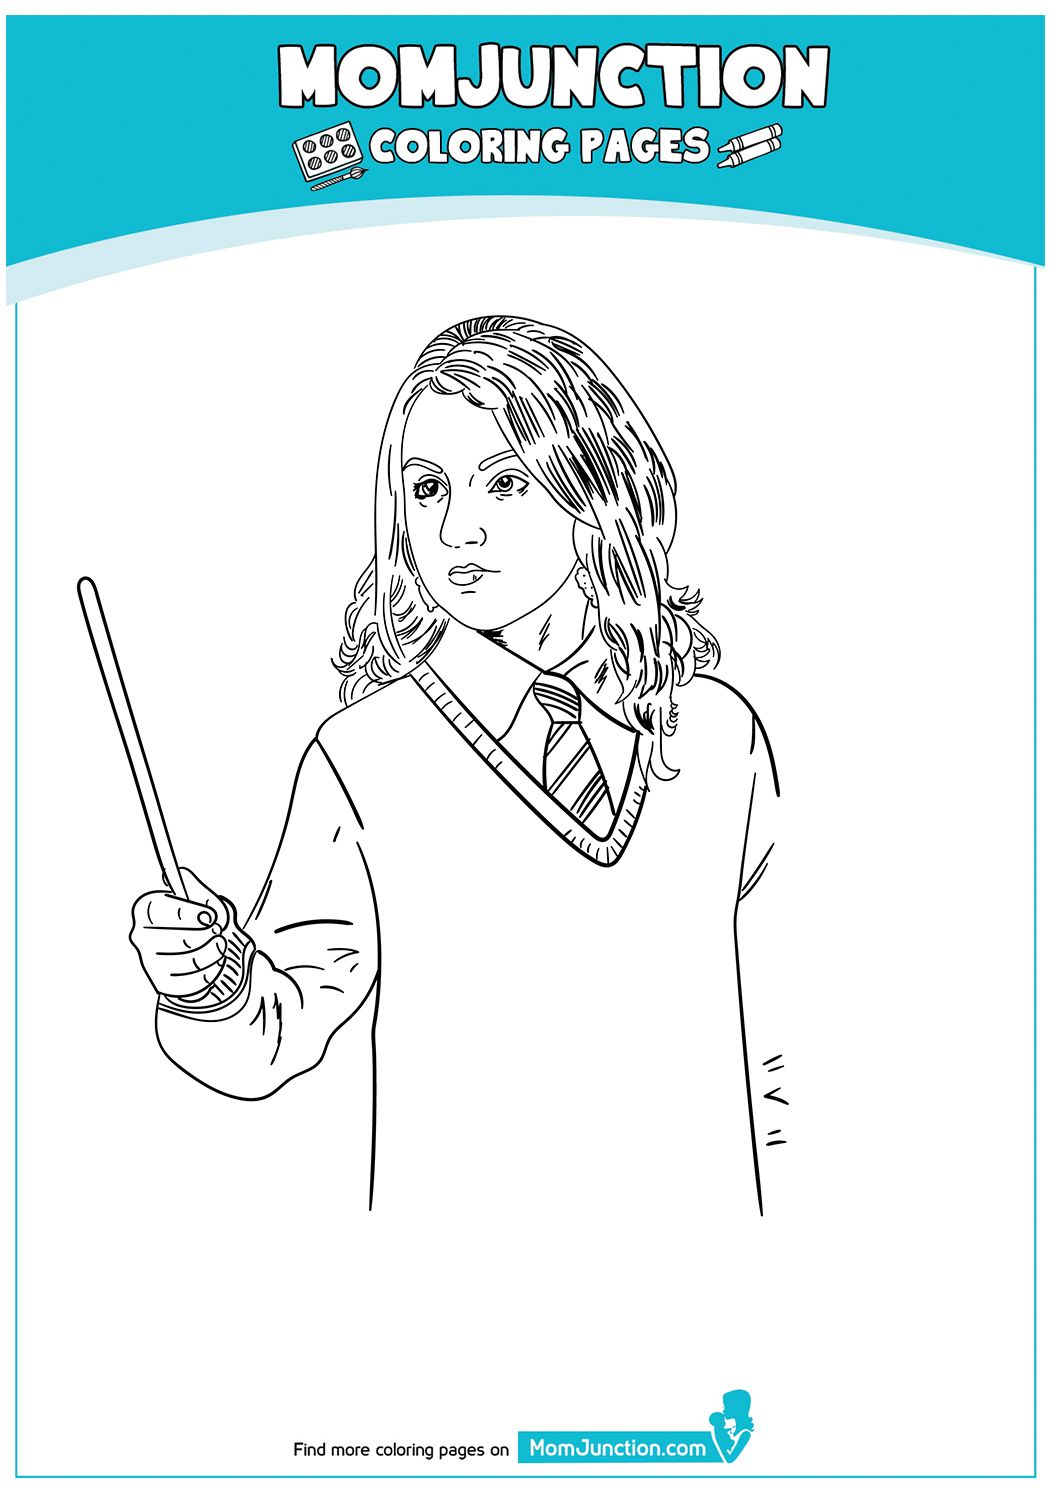 The Ginny Weasley 17 Coloring Pages Color Mom Junction